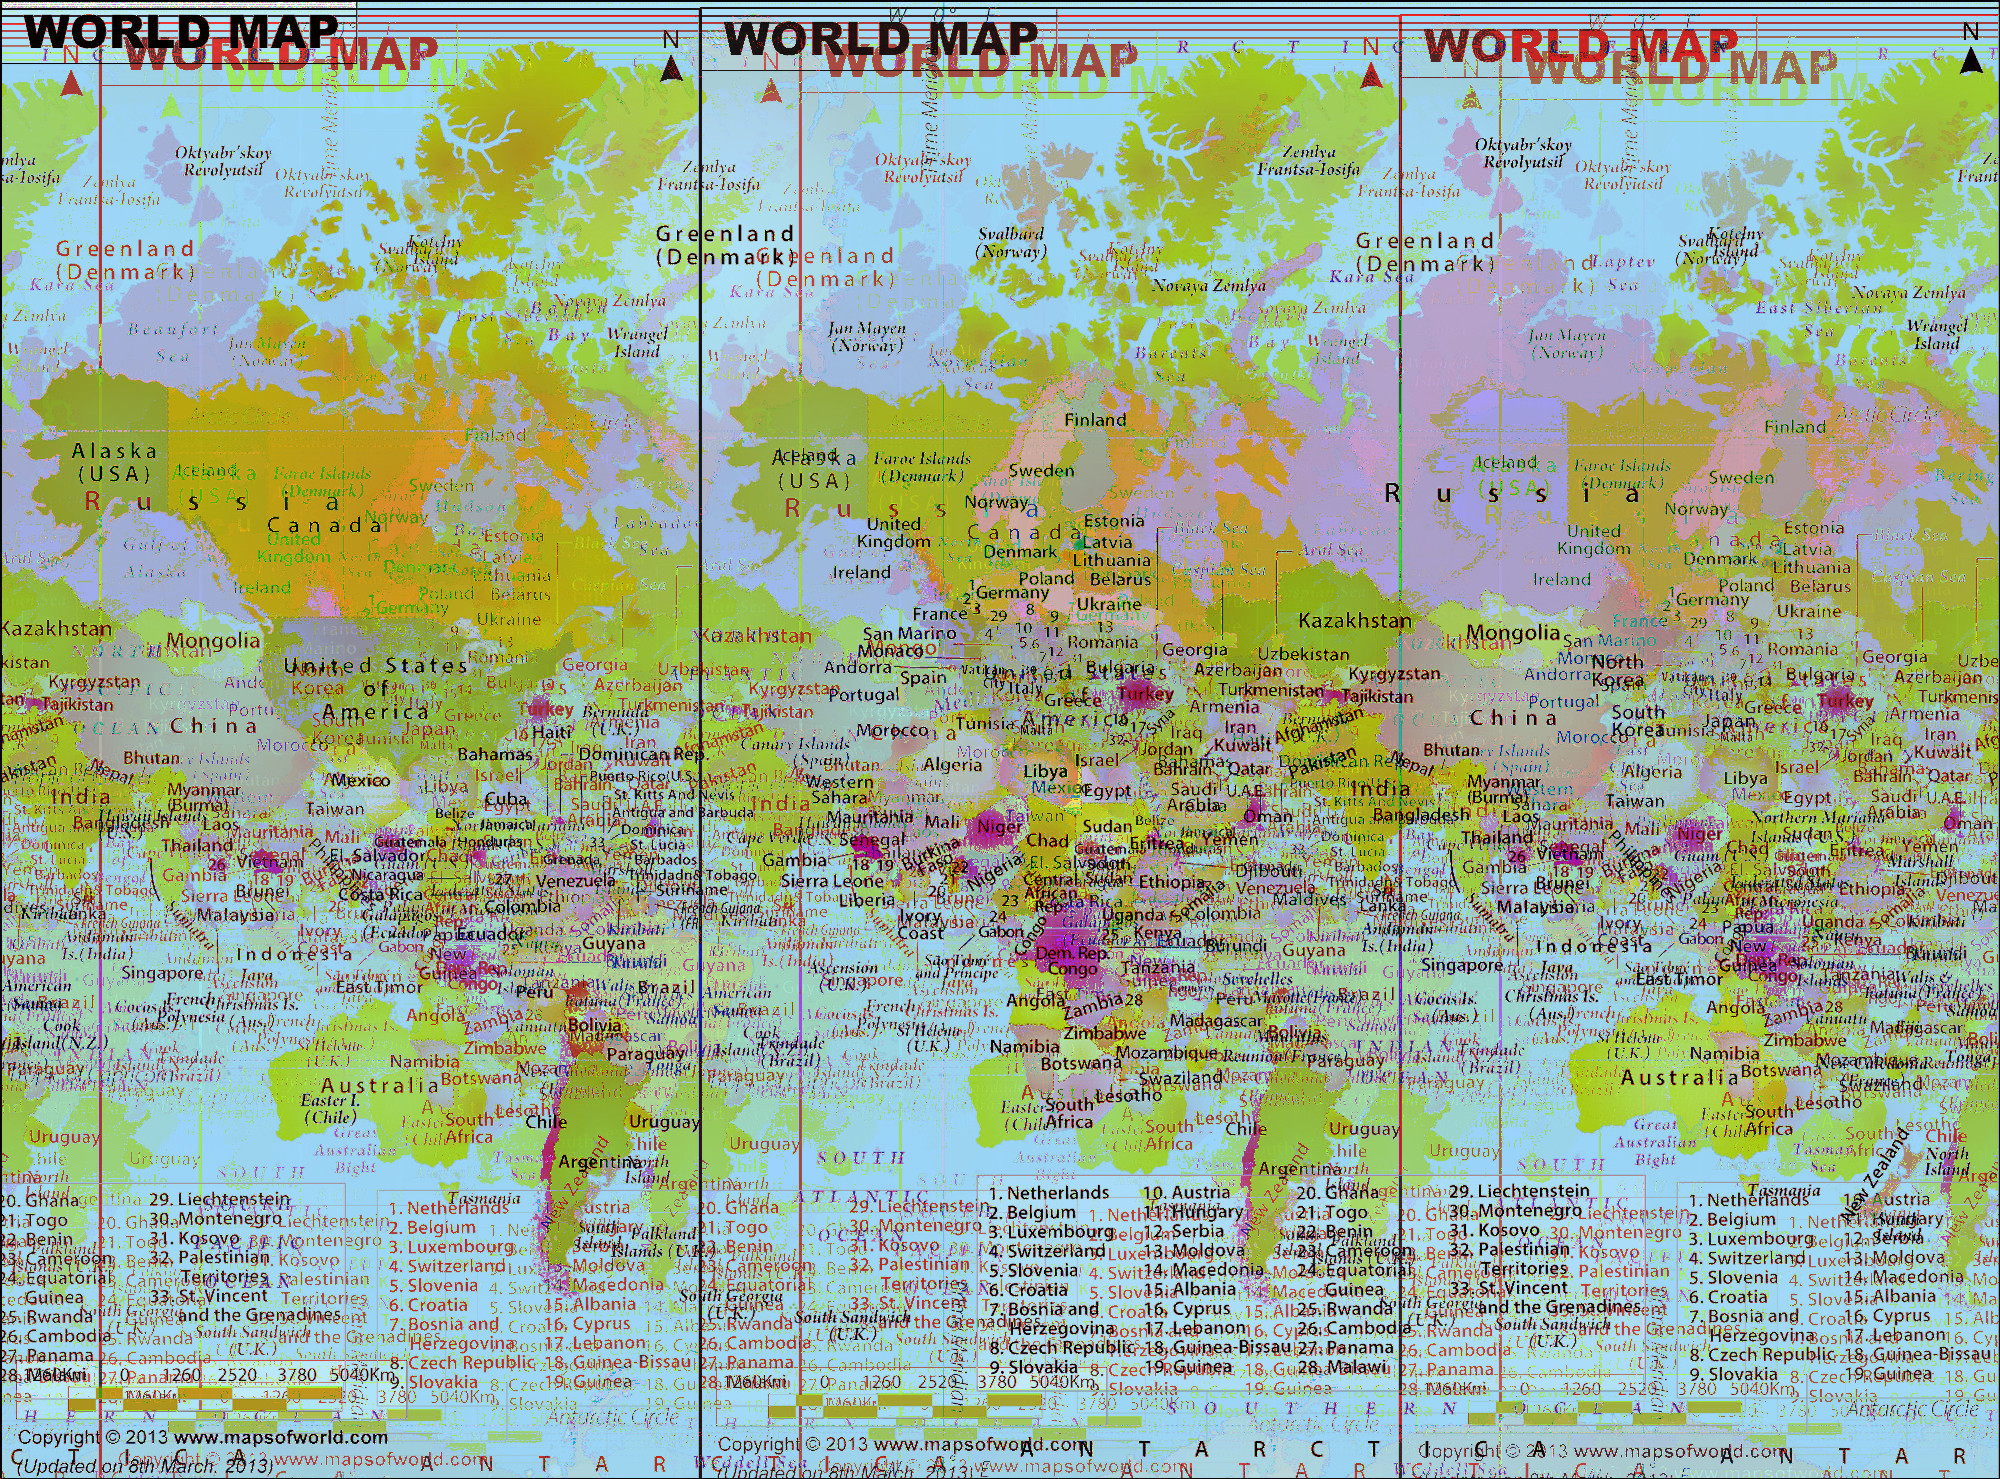 World Map, Sonification echo effect planar